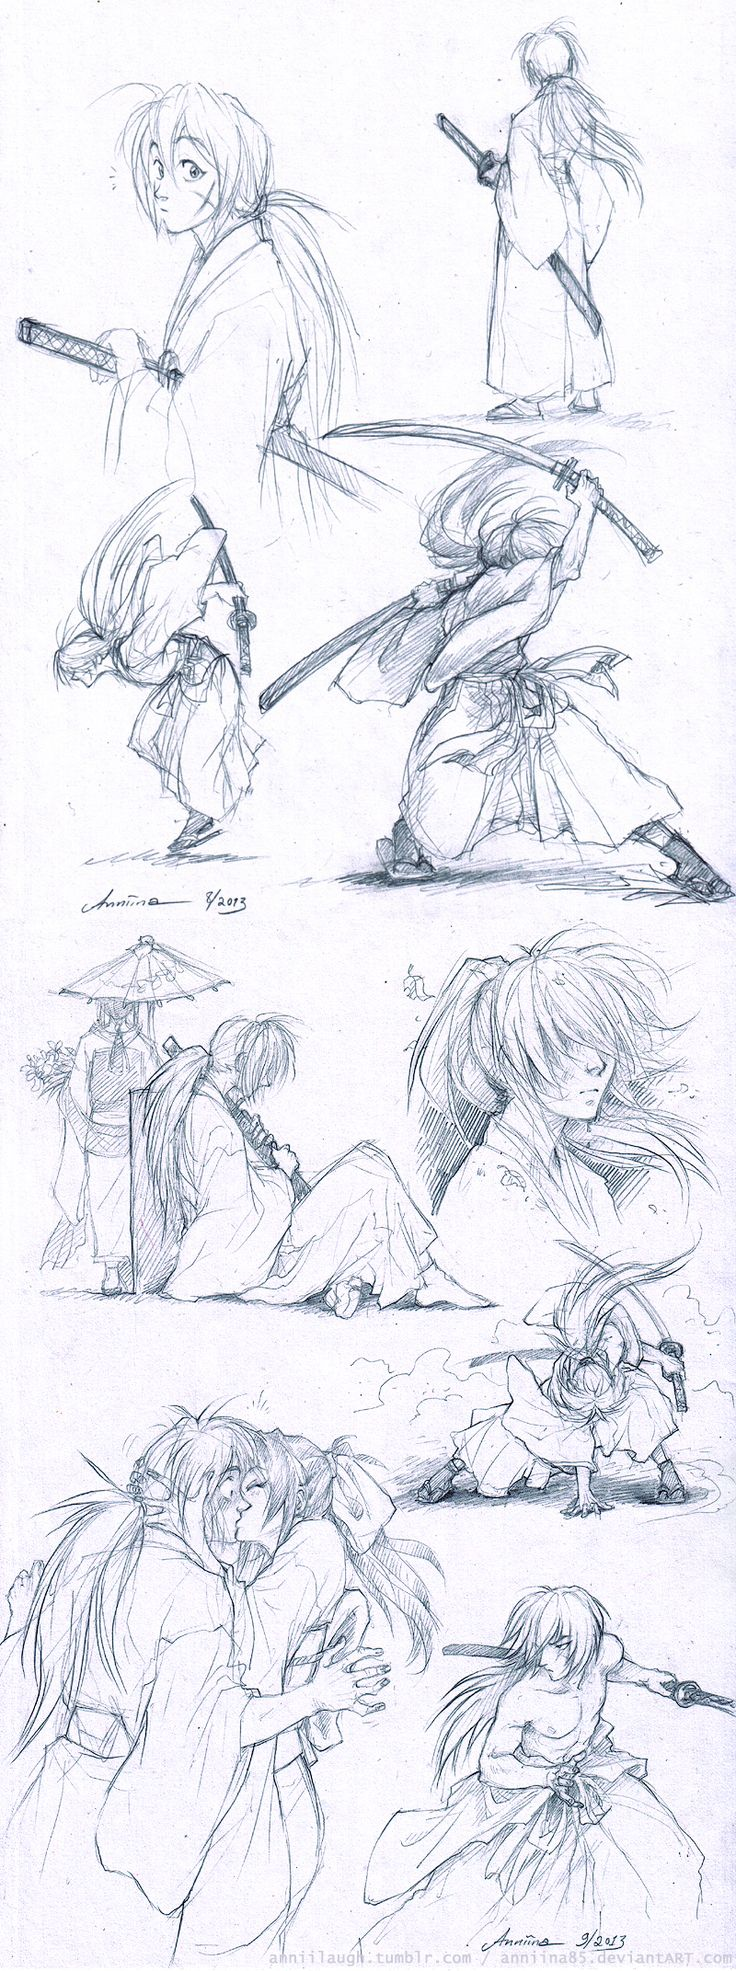 RuroKen sketches by Anniina85.deviantart.com on @deviantART